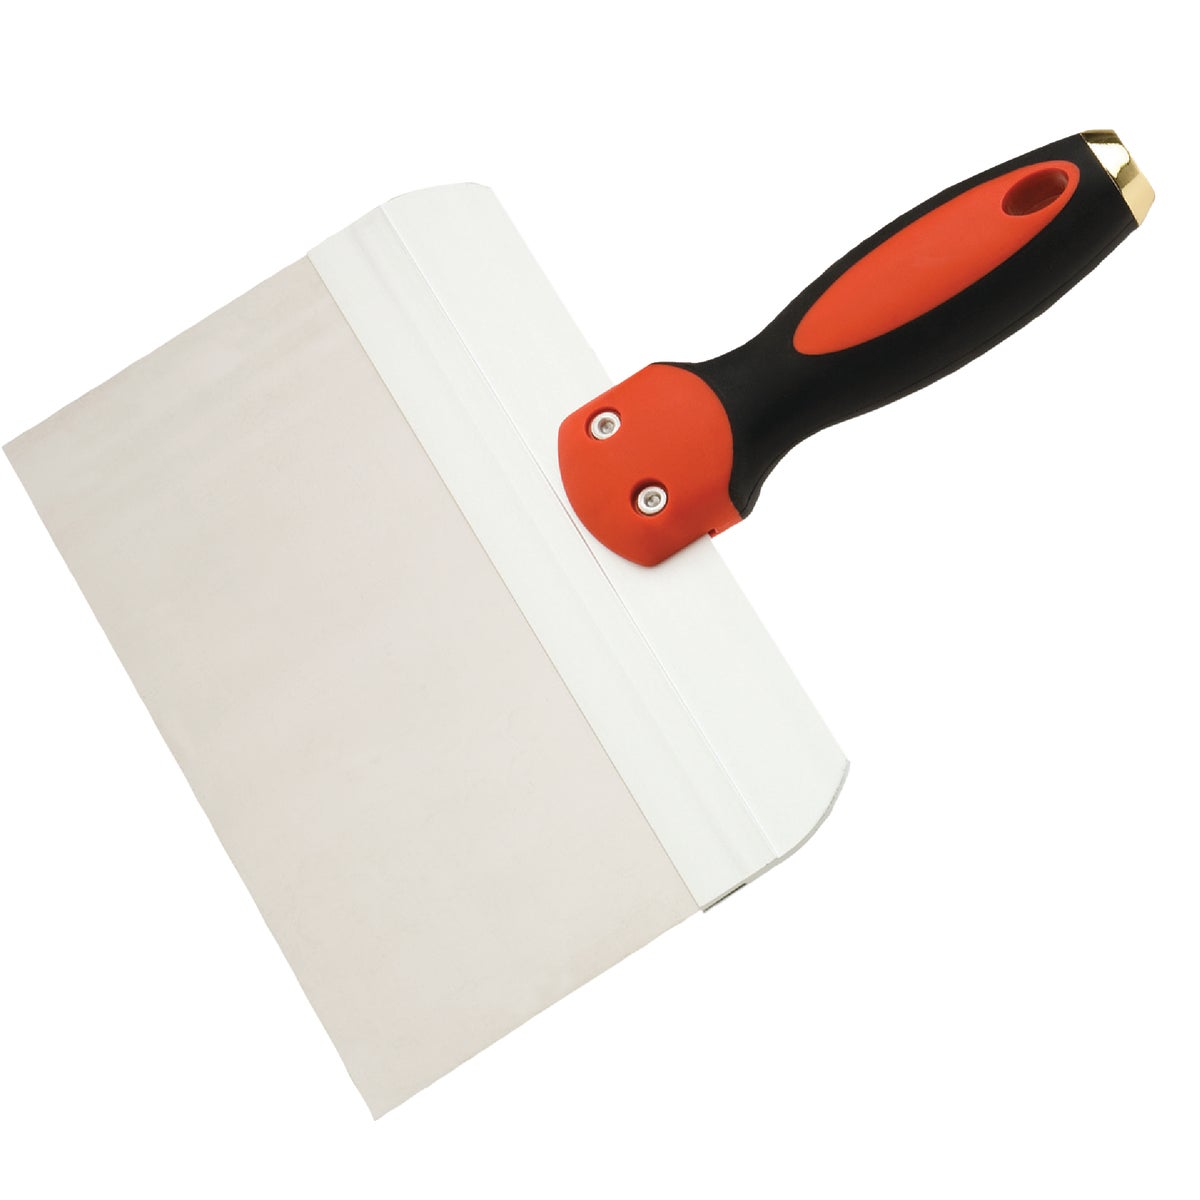 "8"" SS TAPING KNIFE ERGO - 322886 by Do it Best"